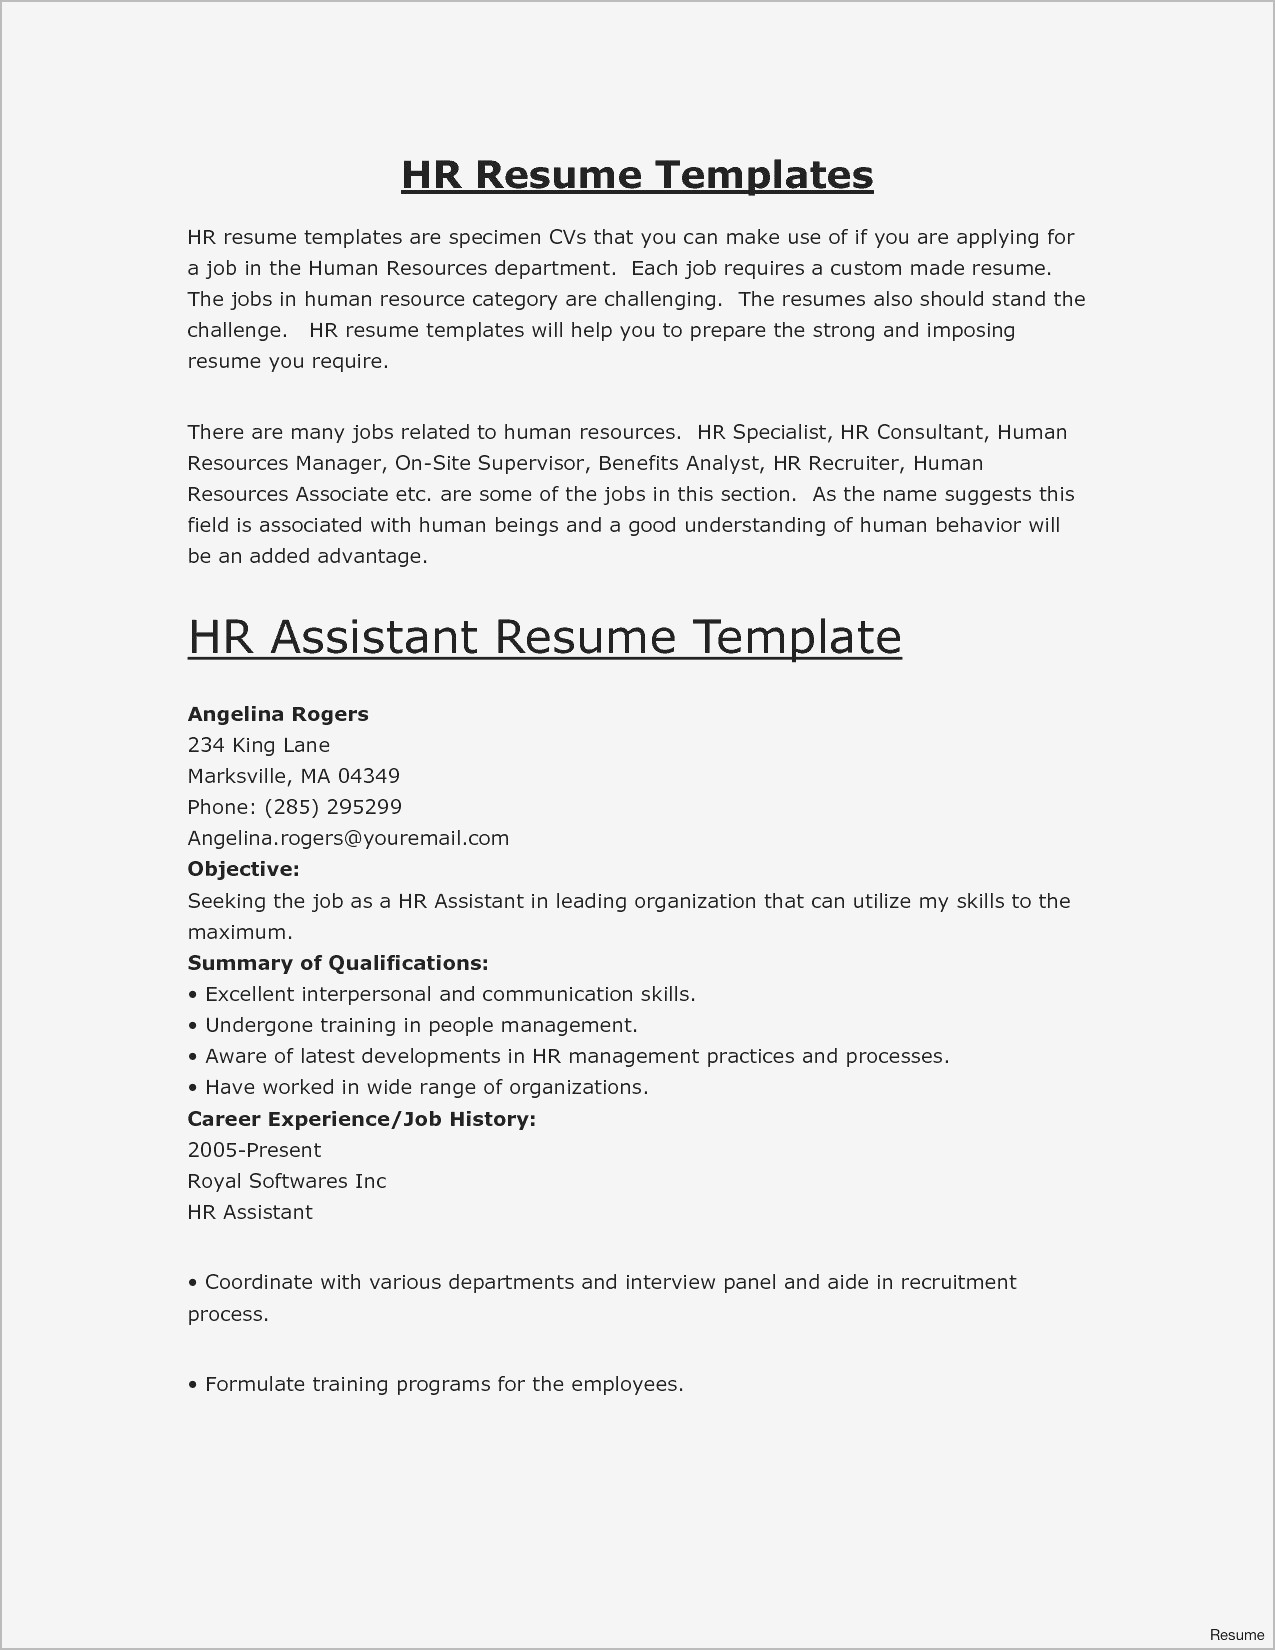 Resume Buzzwords 2018 - Resume Key Words Unique Keywords for Resumes Best Resume Keywords 0d